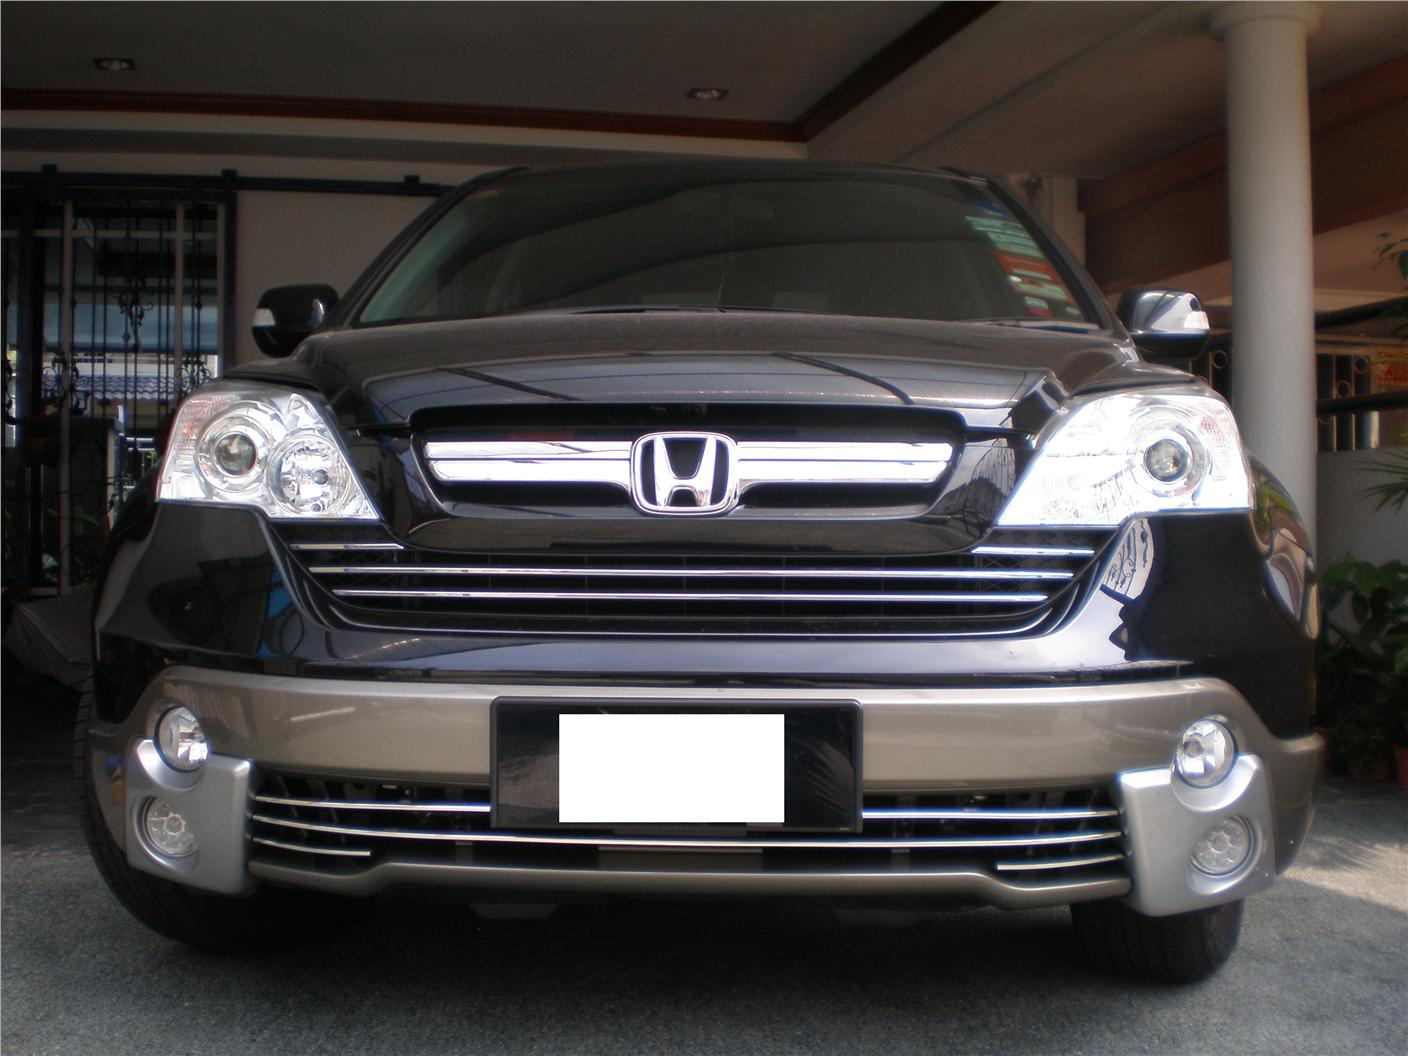 honda crv 2007 mugen body kit end 1 10 2016 3 15 pm. Black Bedroom Furniture Sets. Home Design Ideas